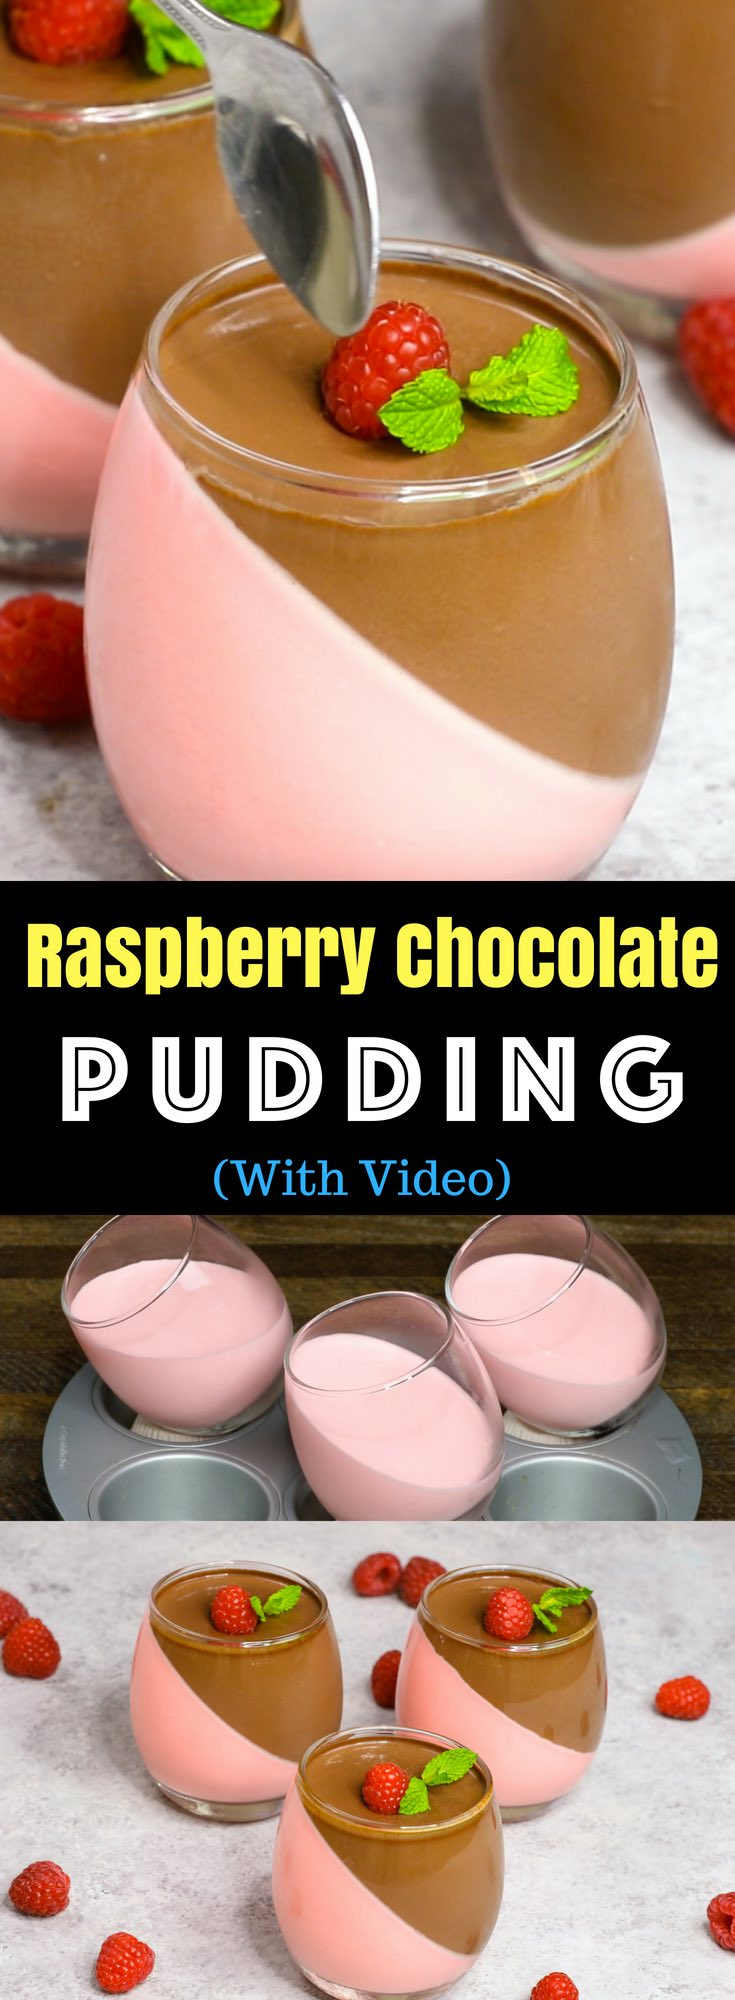 ThisHomemade Chocolate Puddingis a stunning make-ahead mouthwatering dessert that's creamy and smooth. It's an easy recipe with a few simple ingredients: raspberry jello powder, cool whip, half and half milk, gelatin, unsweet chocolate and sugar. Wow your guest with this refreshing dessert at your next party! No bake, and easy dessert. Video recipe. | izzycooking.com #ChocolatePudding